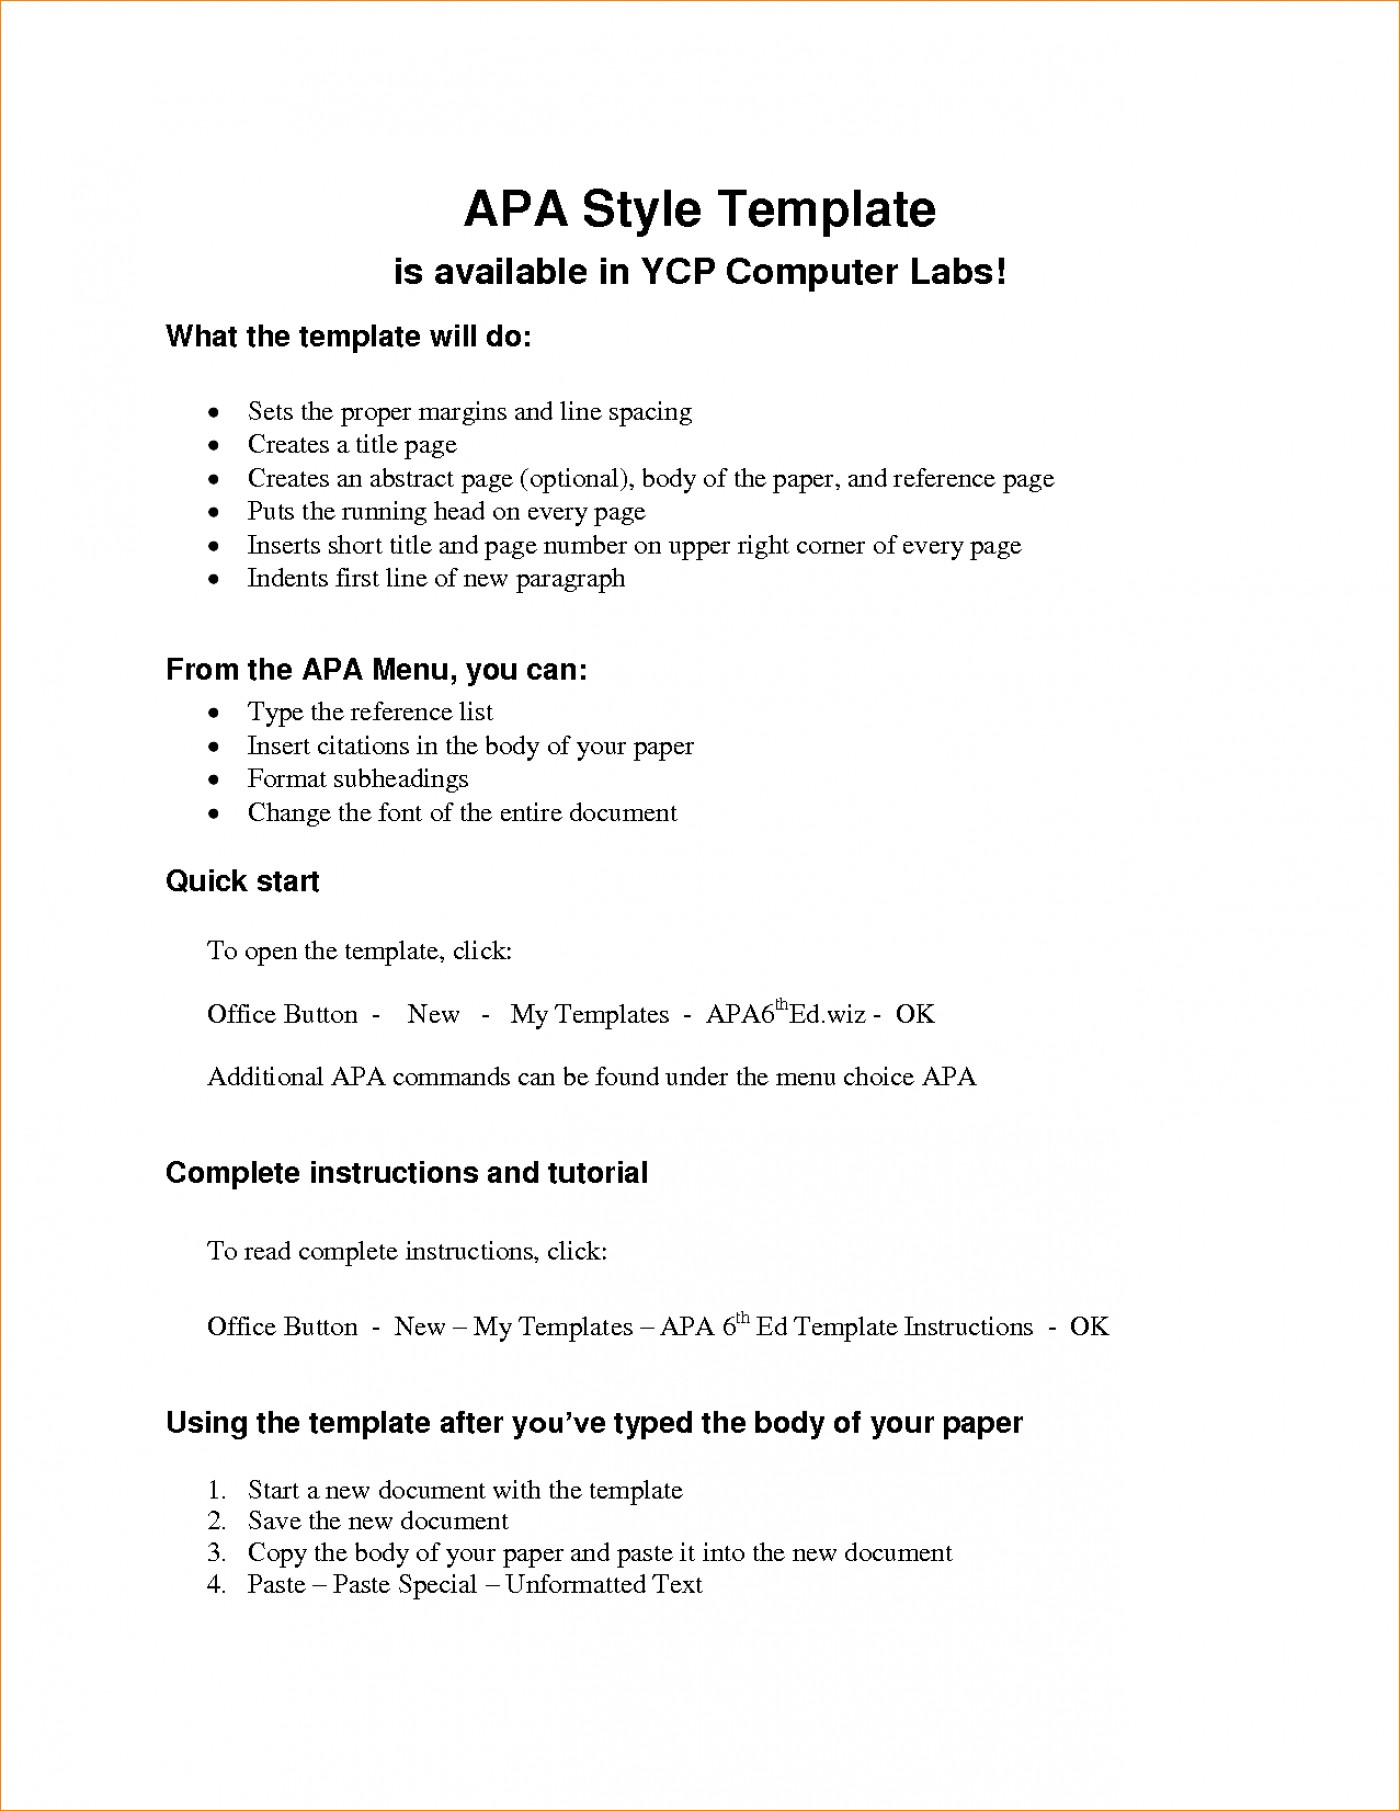 005 Research Paper Outline Template Apa Sample Of An Wonderful A Style Example Apa-style 1400